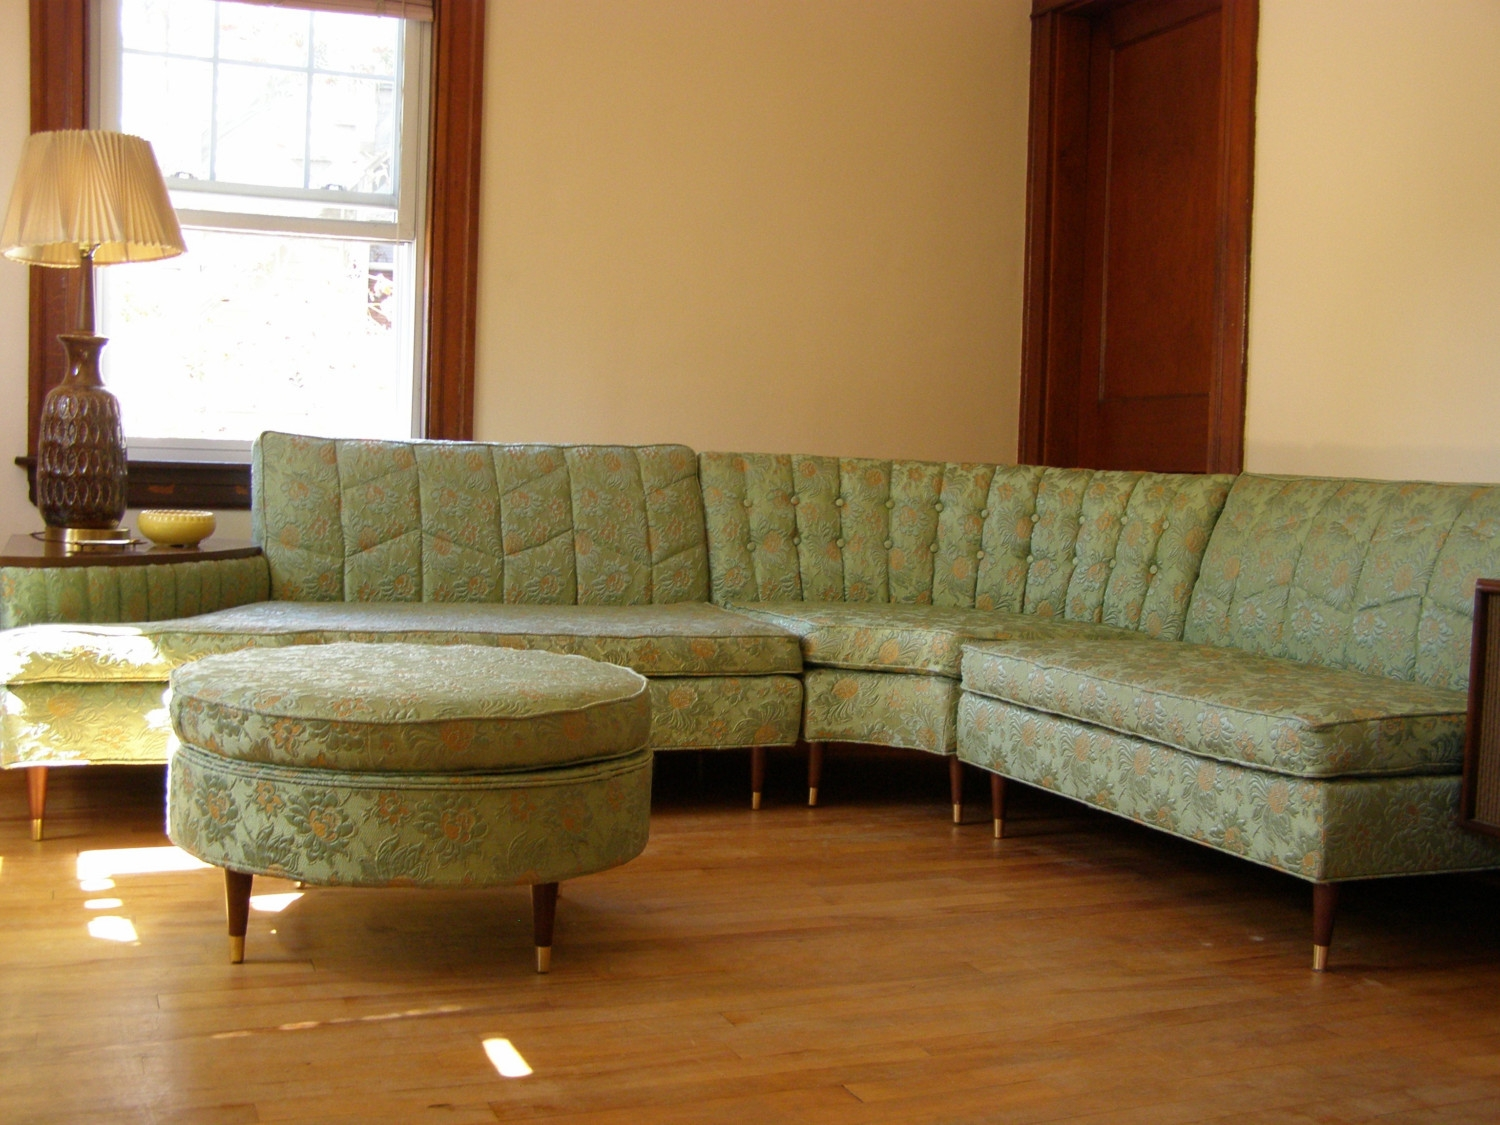 New Years Sale Vintage Sectional Sofa With Built In Side Table For Retro Sofas And Chairs (Image 12 of 15)